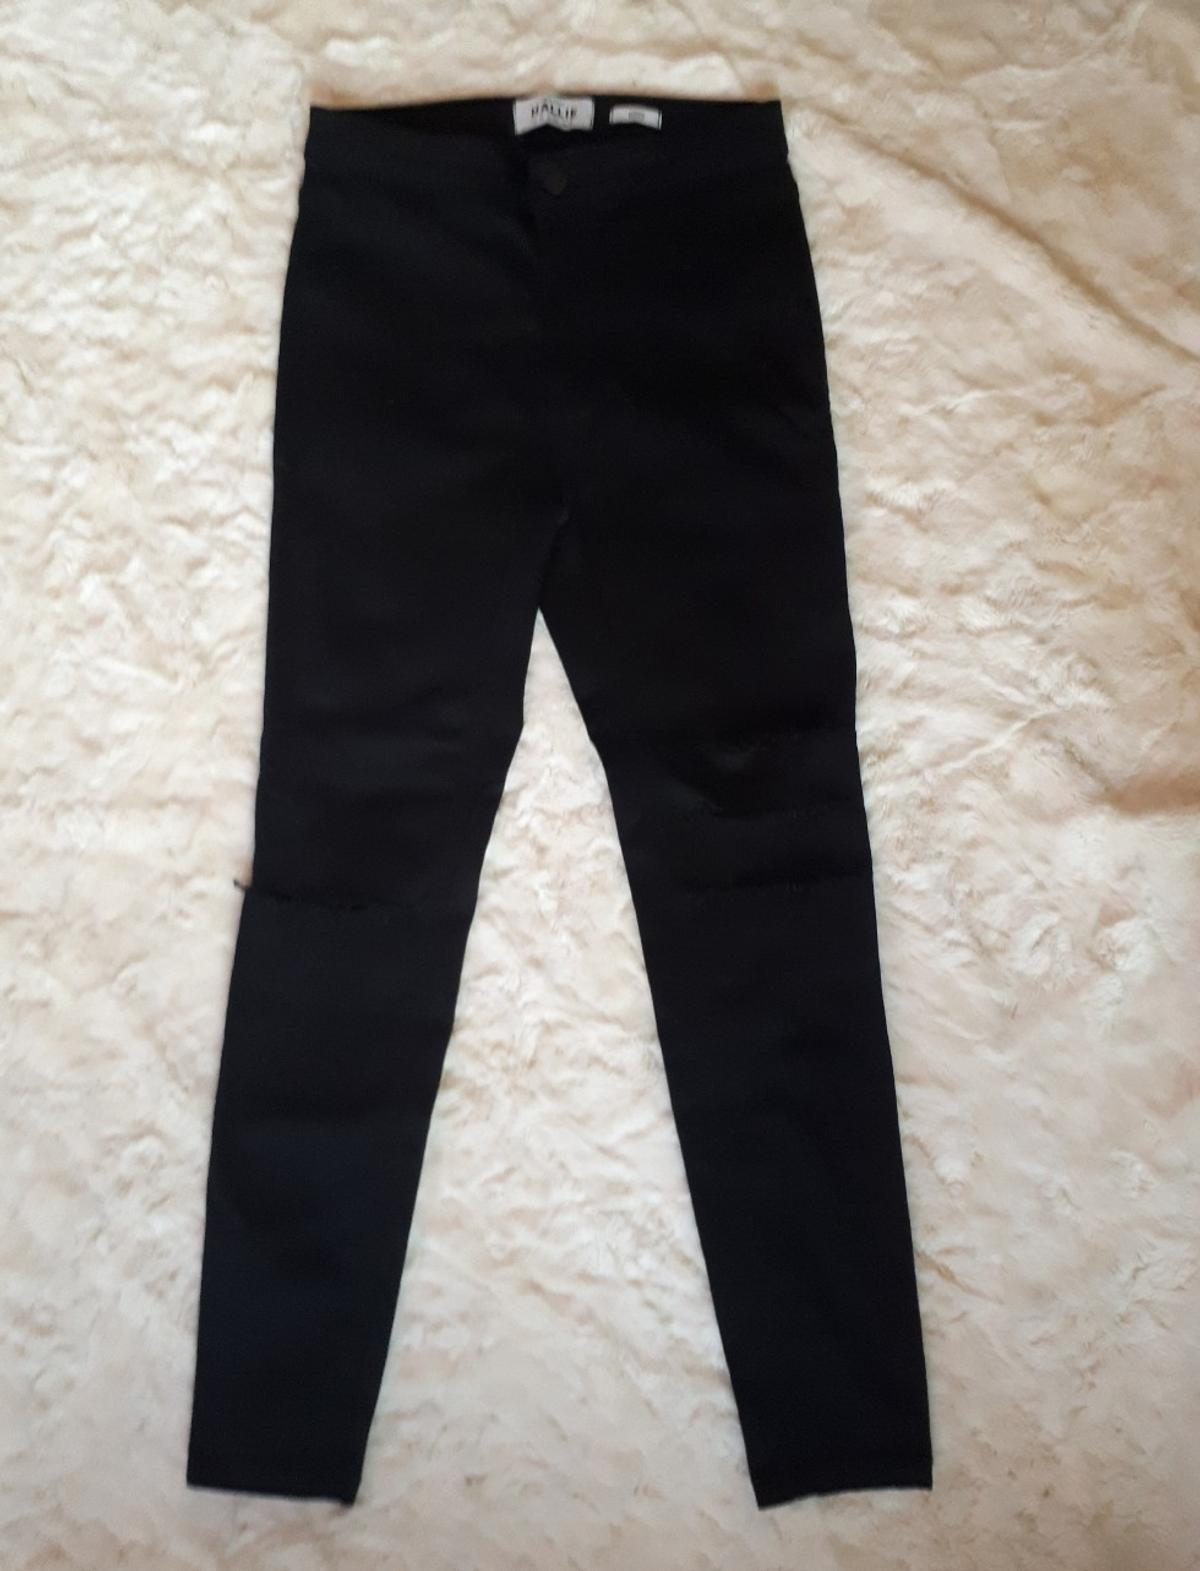 Worn 2 or 3 times, didn't really fit me. Size UK 10 (38)  Please have a look around, I just sorted my wardrobe out and have many things that must go. I'm open to offers, discount on bundles:)